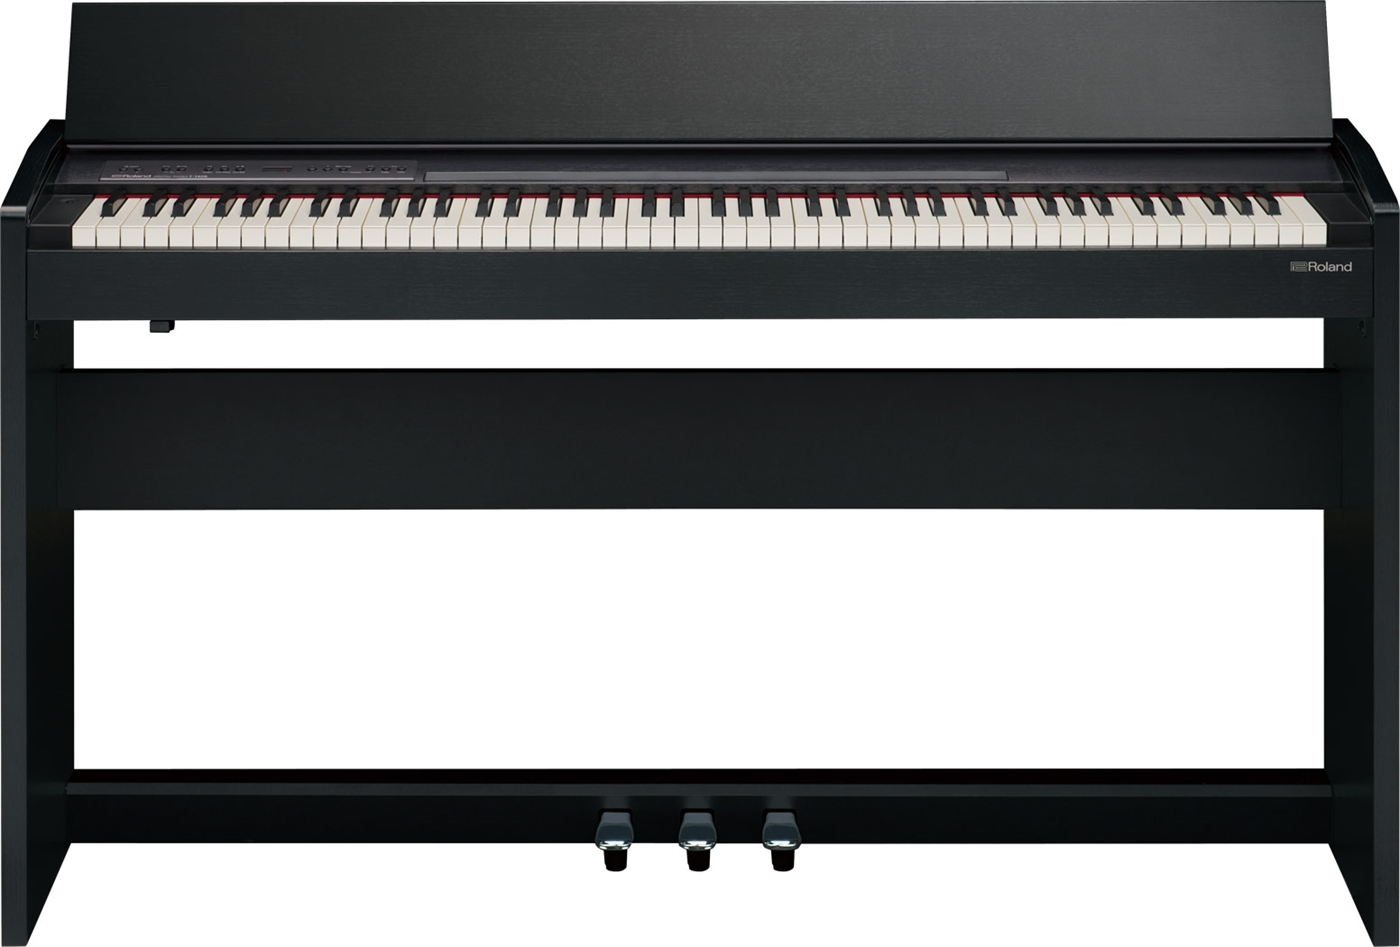 F-140R-CB Roland  Roland F-140R-CB Sort Digitalpiano med SuperNATURAL, Bluetooth